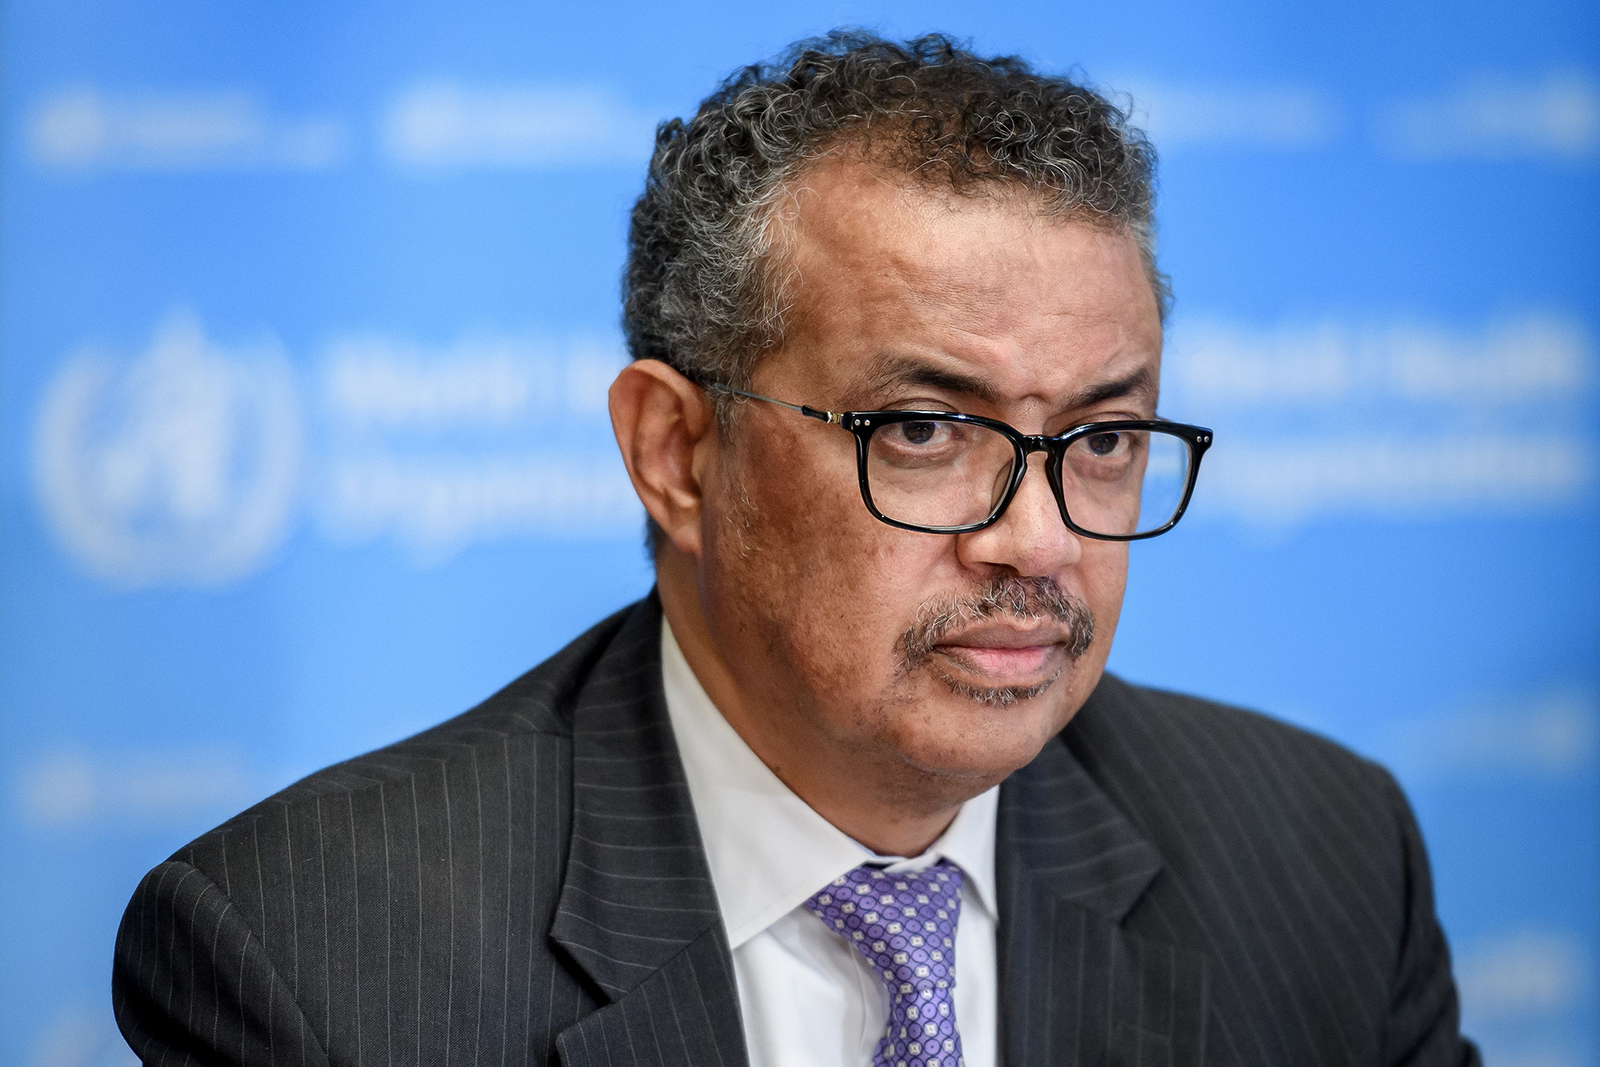 World Health Organization Director-General Tedros Adhanom Ghebreyesus attends a daily press briefing on March 9, in Geneva, Switzerland.